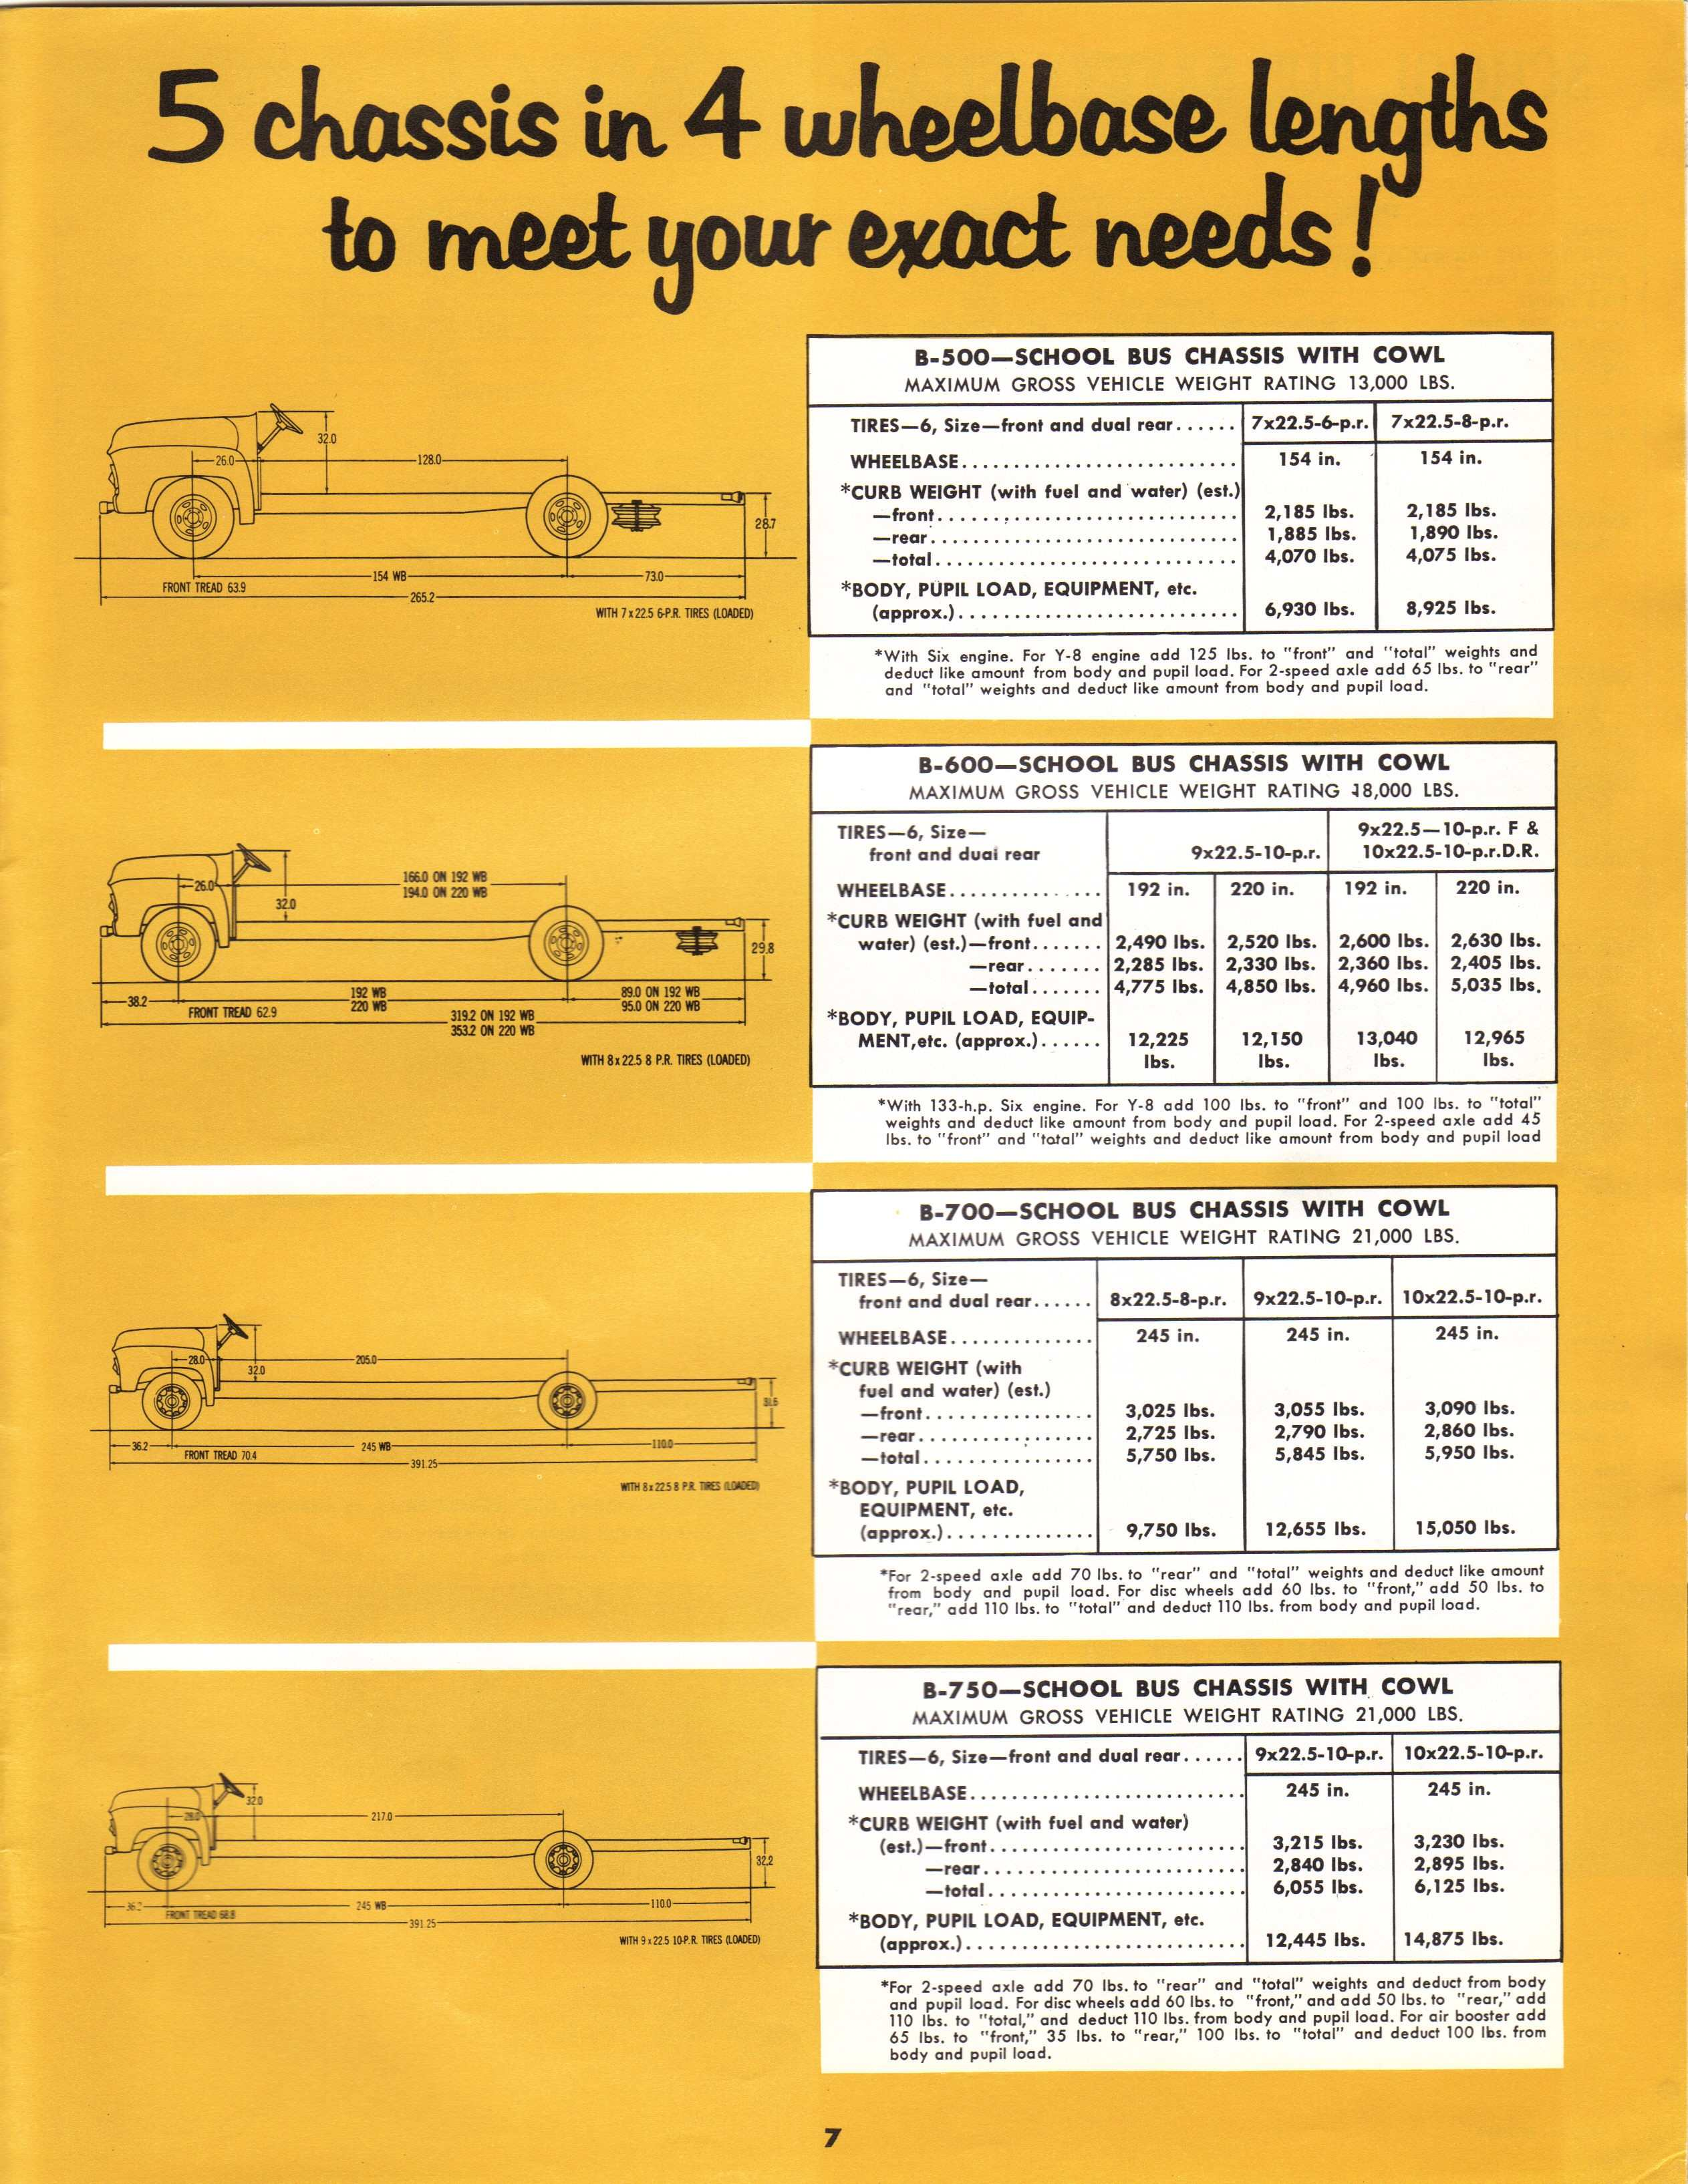 1956 Ford School Bus Chassis Brochure Pg 7 5 In 4 Wheelbase